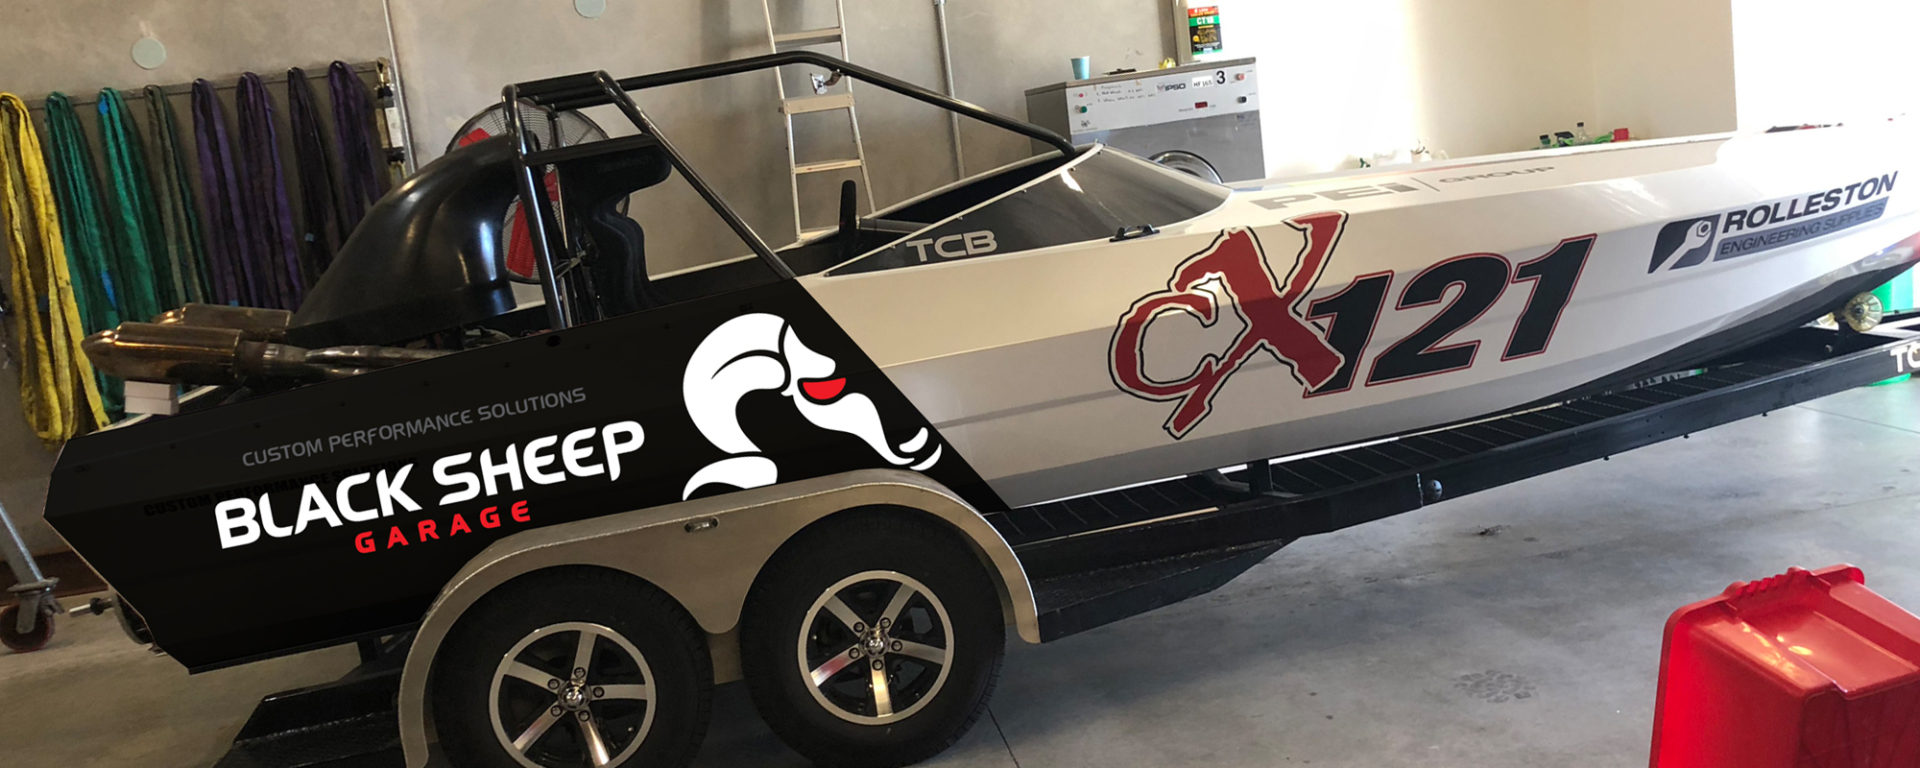 car and boat sign design and production designer XDC is the most experienced professional and affordable value for money creative company in the Rolleston Selwyn Christchurch Ashburton Canterbury area. This is the Black Sheep Garage speed racer jet boat done by the most all round Christchurch website and graphic designer based in Rolleston NZ